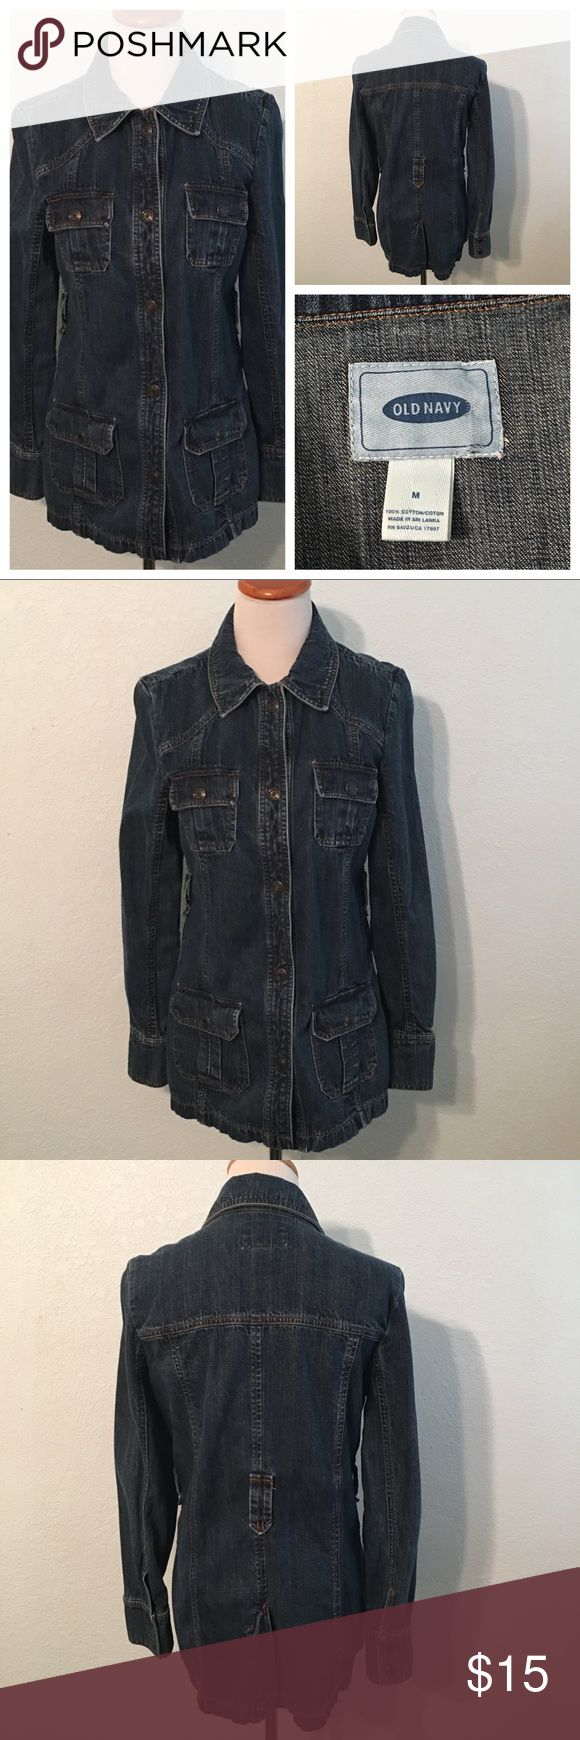 """Old Navy Jean Jacket Size M Item: Snap Front Jean Jacket Label: Old Navy Condition: Pre-owned Size: M Material: 100% Cotton  Measurements: All measurements are approximate and are taken from across the front of the item while laying flat. Underarm to Underarm (Bust): 19"""" Waist: 17"""" Hip: 18"""" Length: 27"""" Sleeve: 24"""" Good to Know:  Gently worn with no rips, tears, holes, or stains. The original belt is missing. Old Navy Jackets & Coats Jean Jackets"""